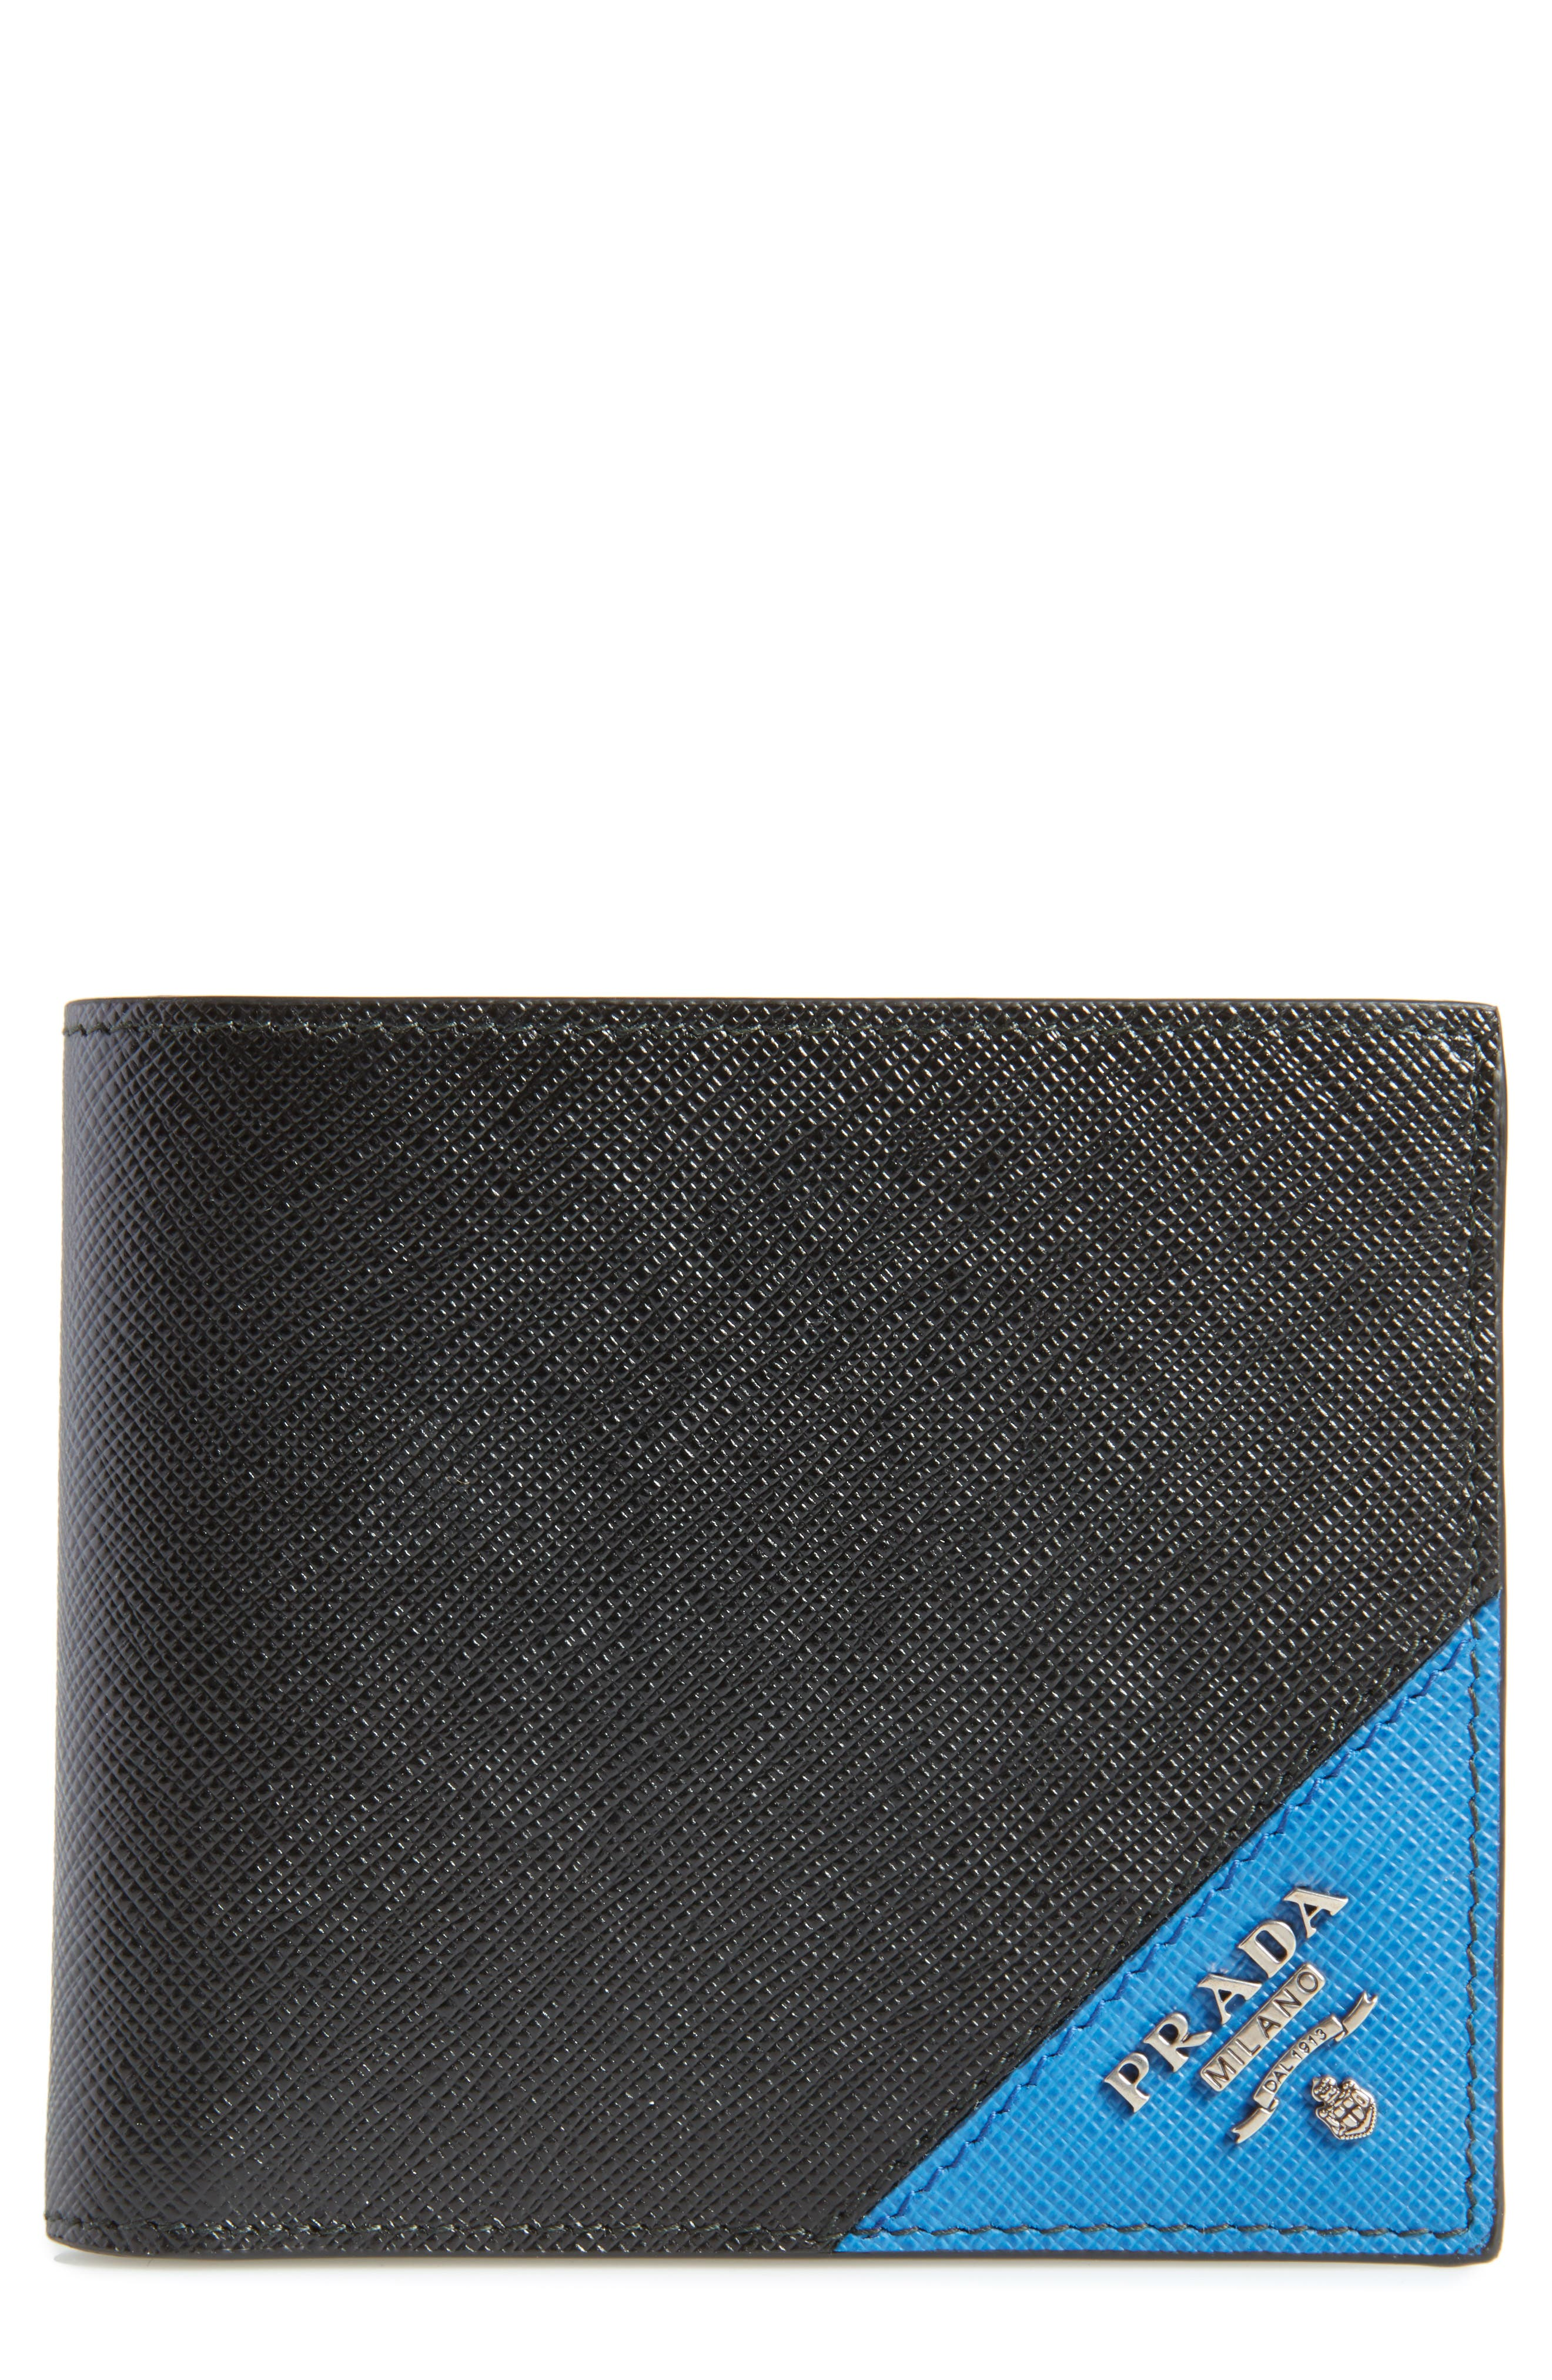 Saffiano Leather Billfold Wallet,                         Main,                         color, 002